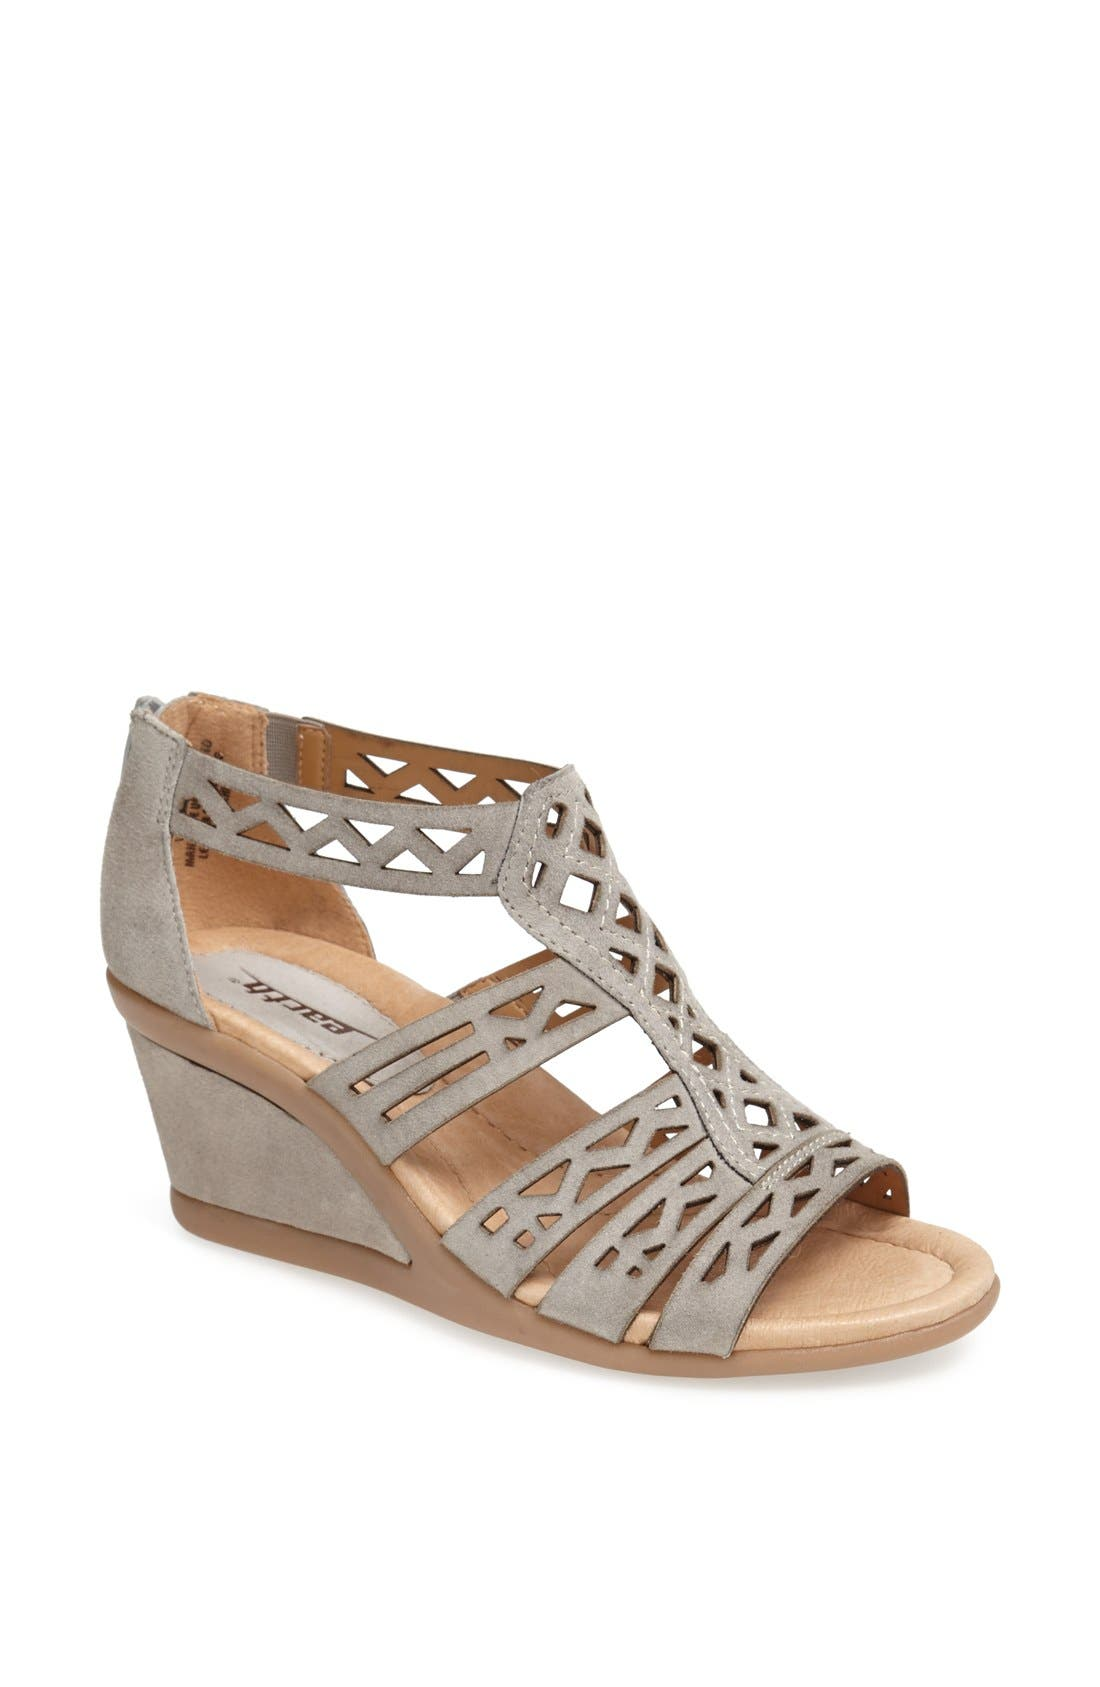 Alternate Image 1 Selected - Earth® 'Petal' Wedge Sandal